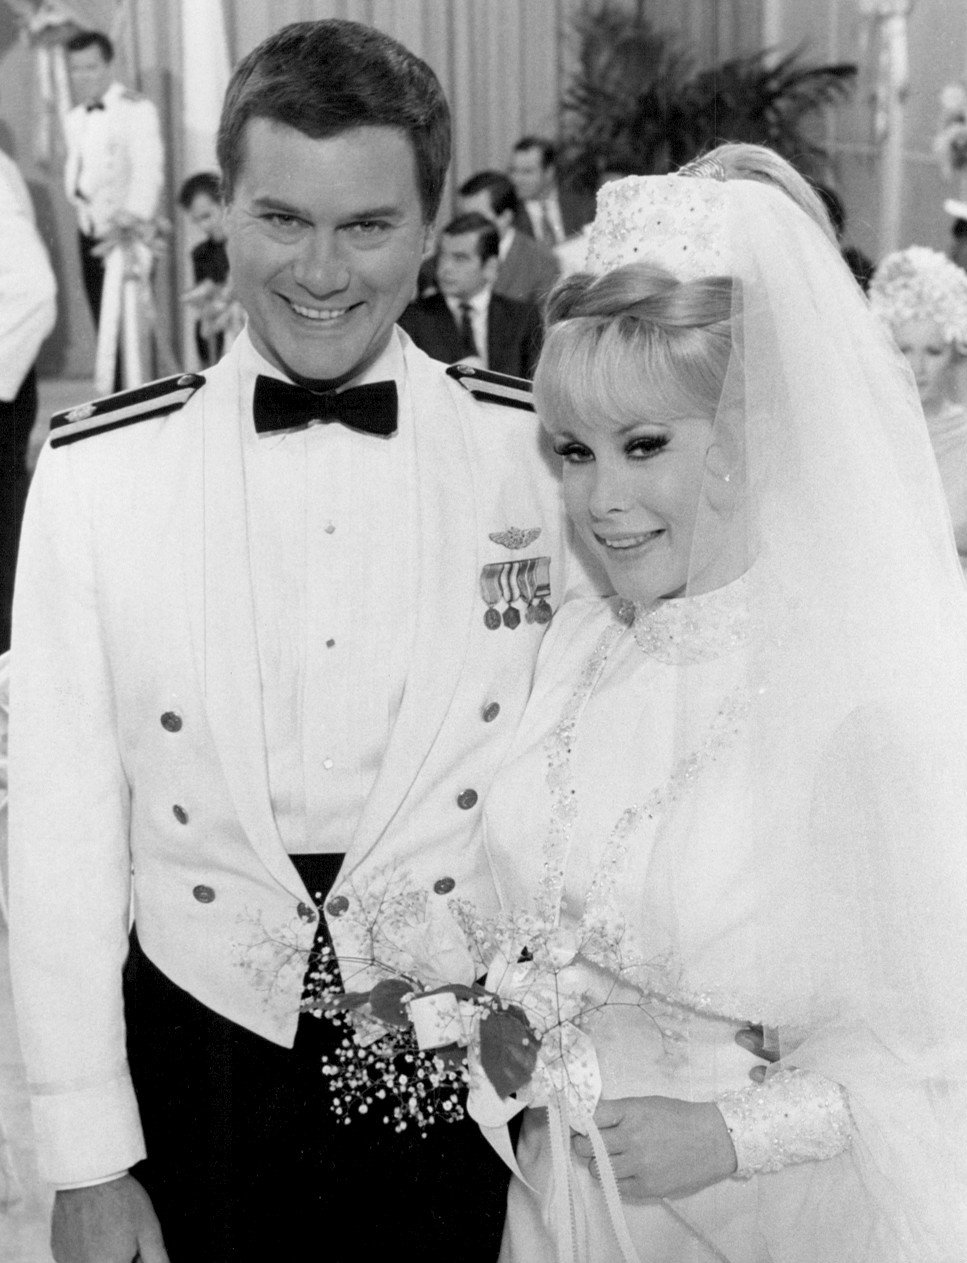 Photo of Jeannie and Tony's wedding from I Dream of Jeannie. | Wikimedia Commons